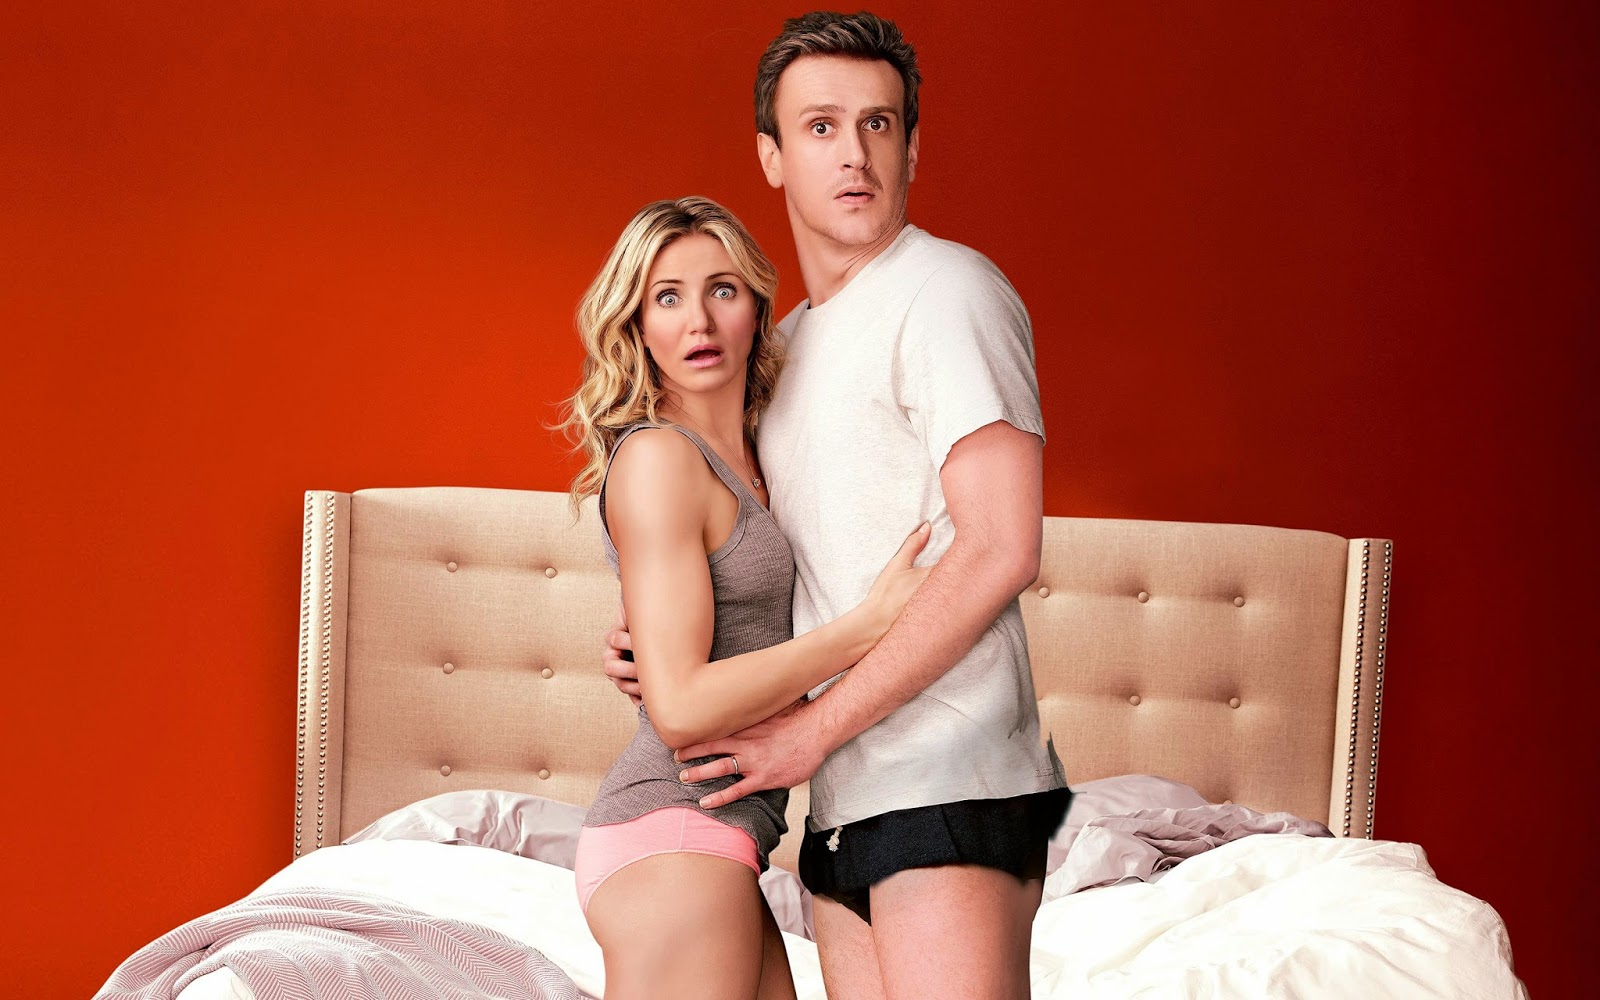 Download HD Sex Tape 2014 Movie Wallpapers